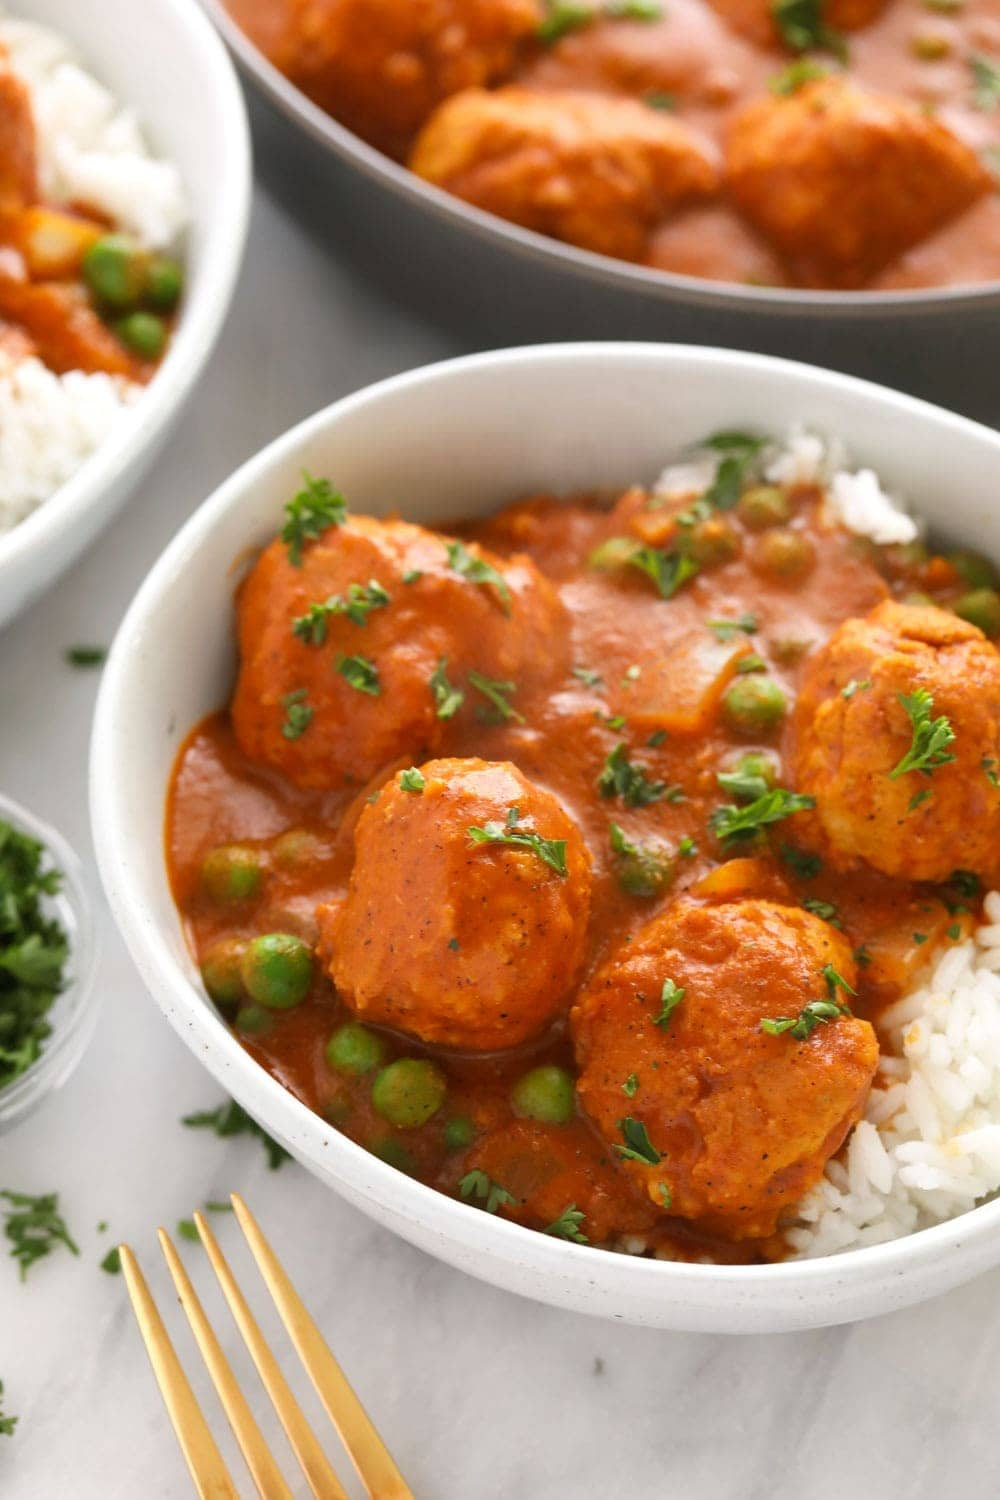 Tikka masala meatballs over rice